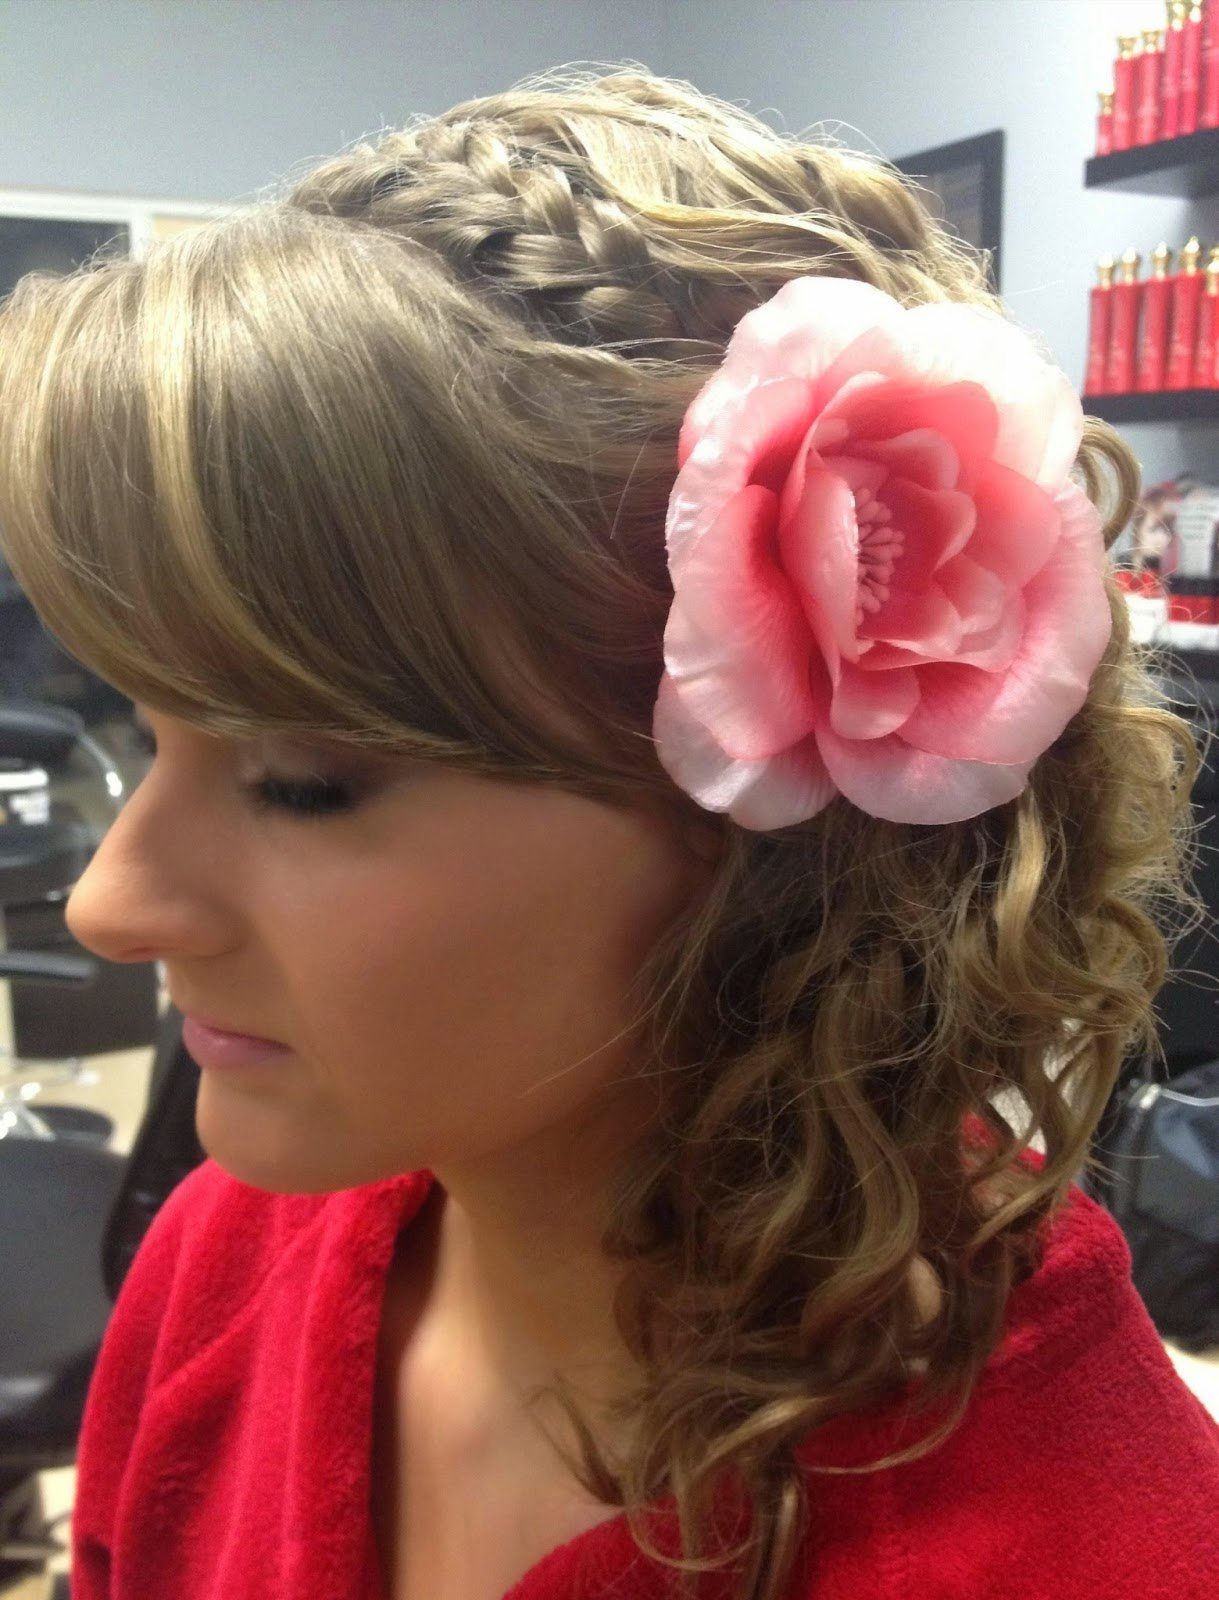 The Best Hairstyles 2014 8 Stunning Prom Updos For Long Hair Pictures